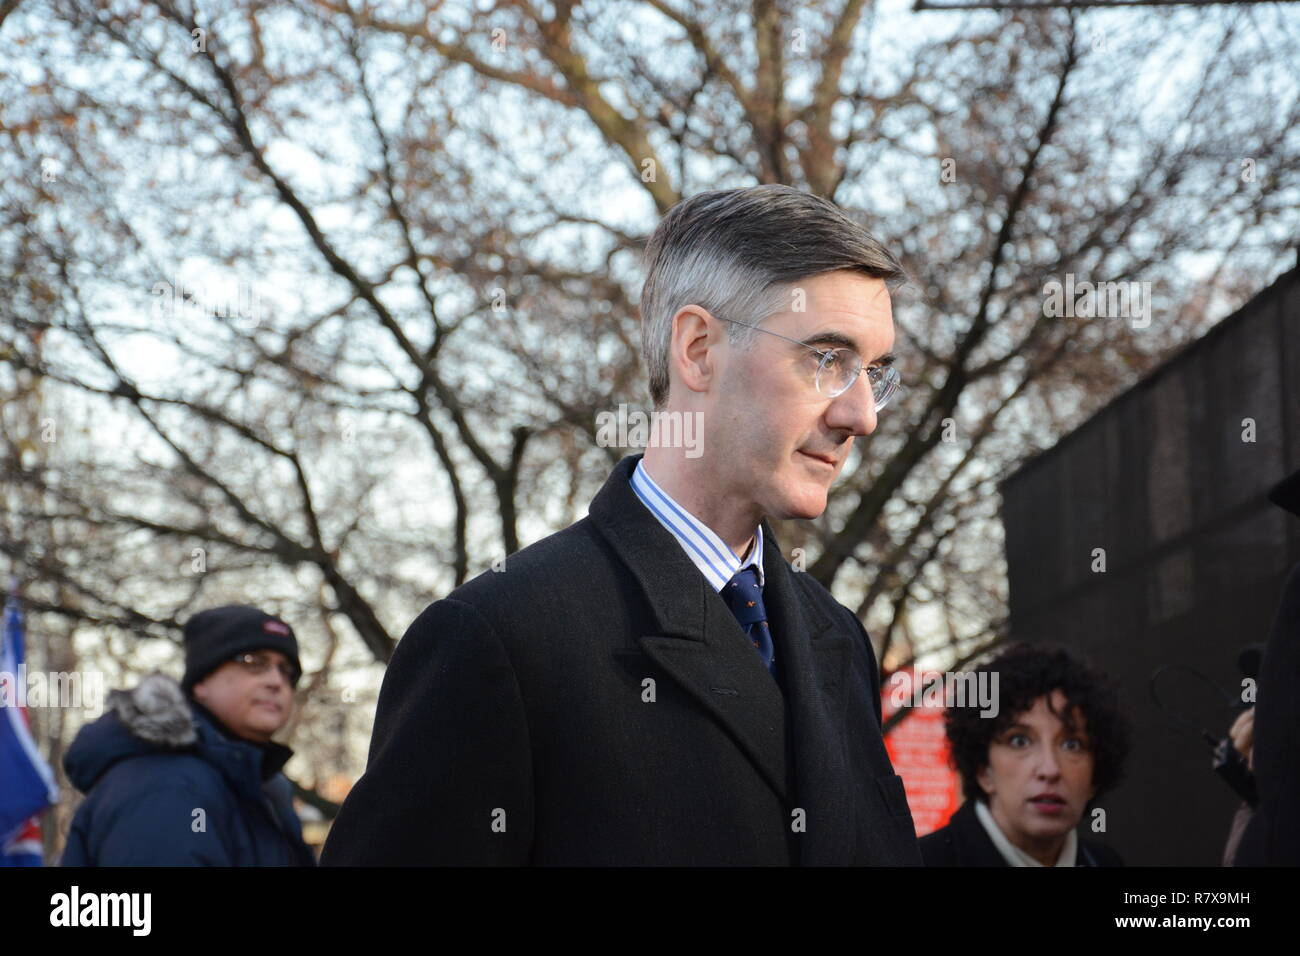 Jacob Rees Mogg on College Green on the day the Meaningful Vote should have taken place - Tuesday 11th December. - Stock Image